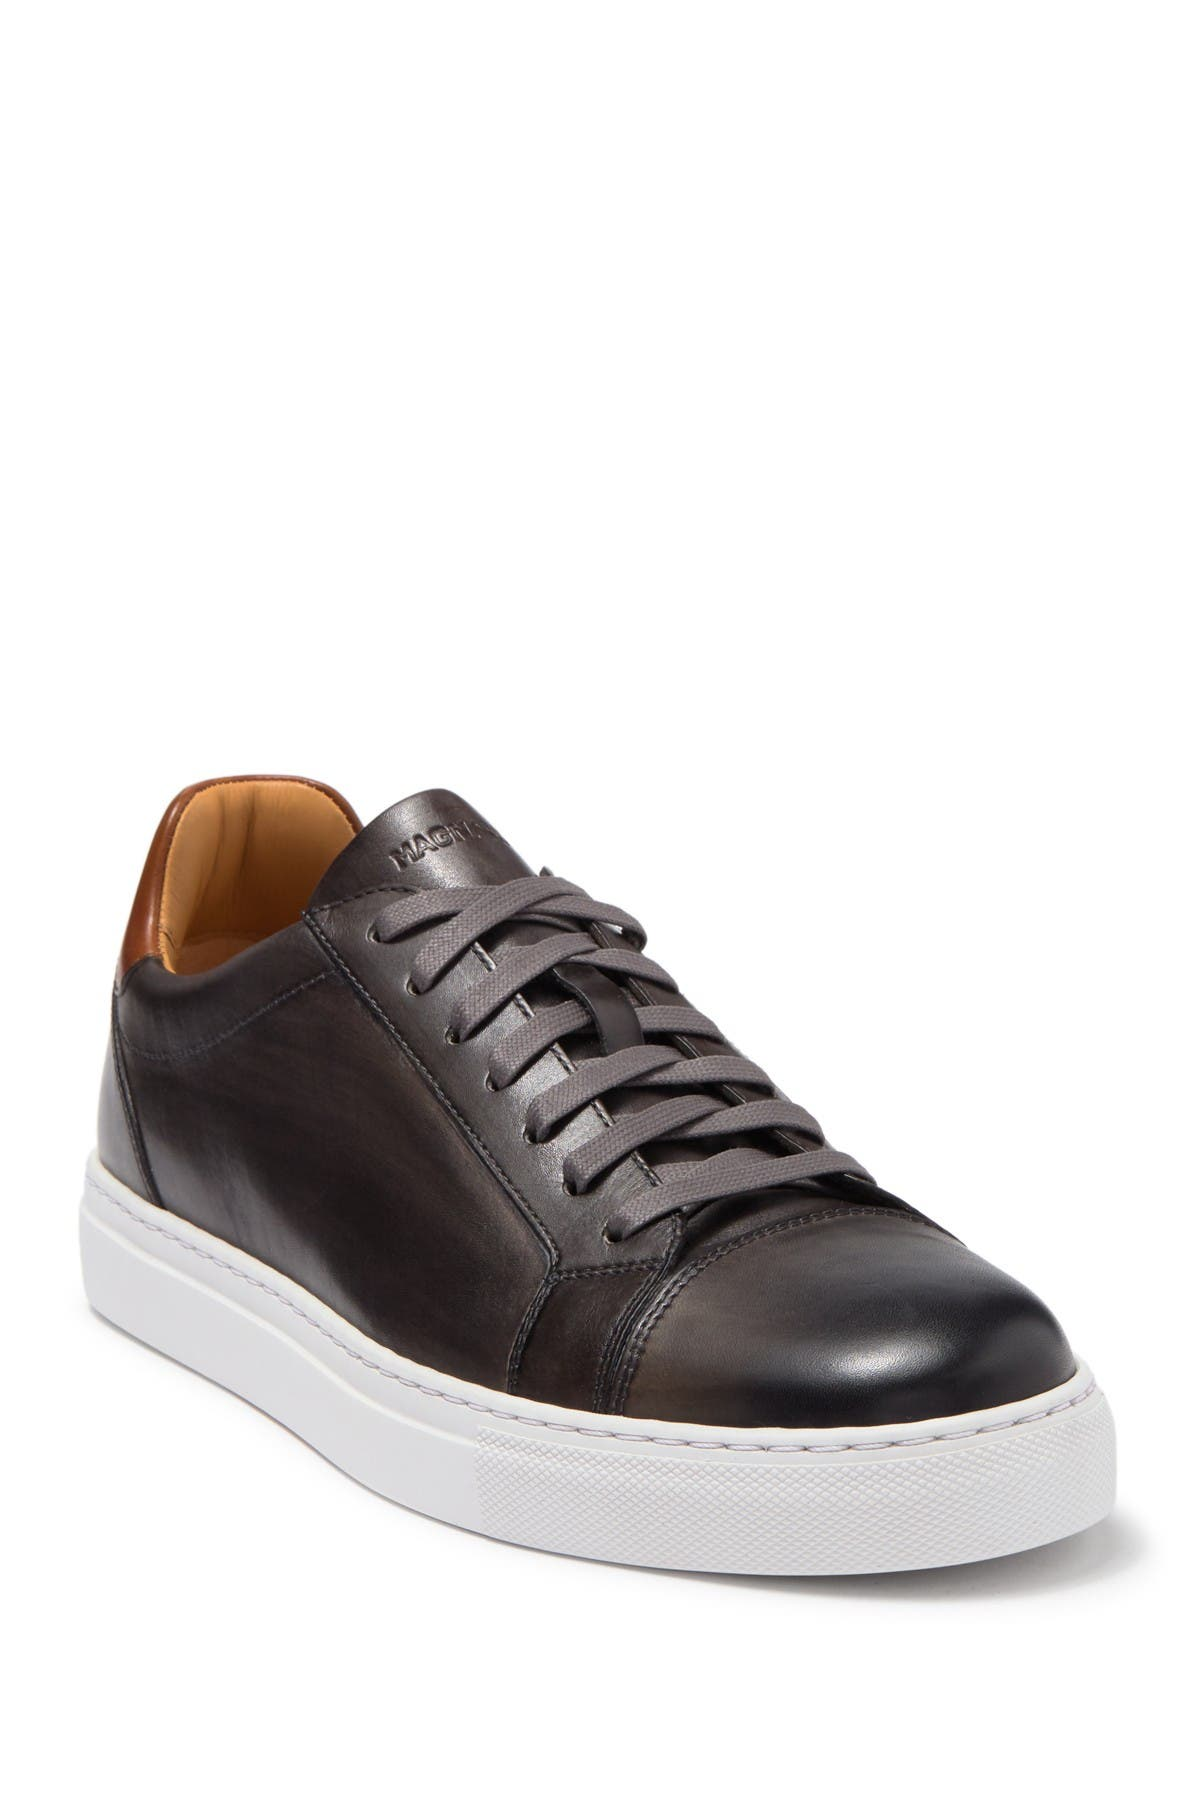 Image of Magnanni Cuervo II Leather Sneaker